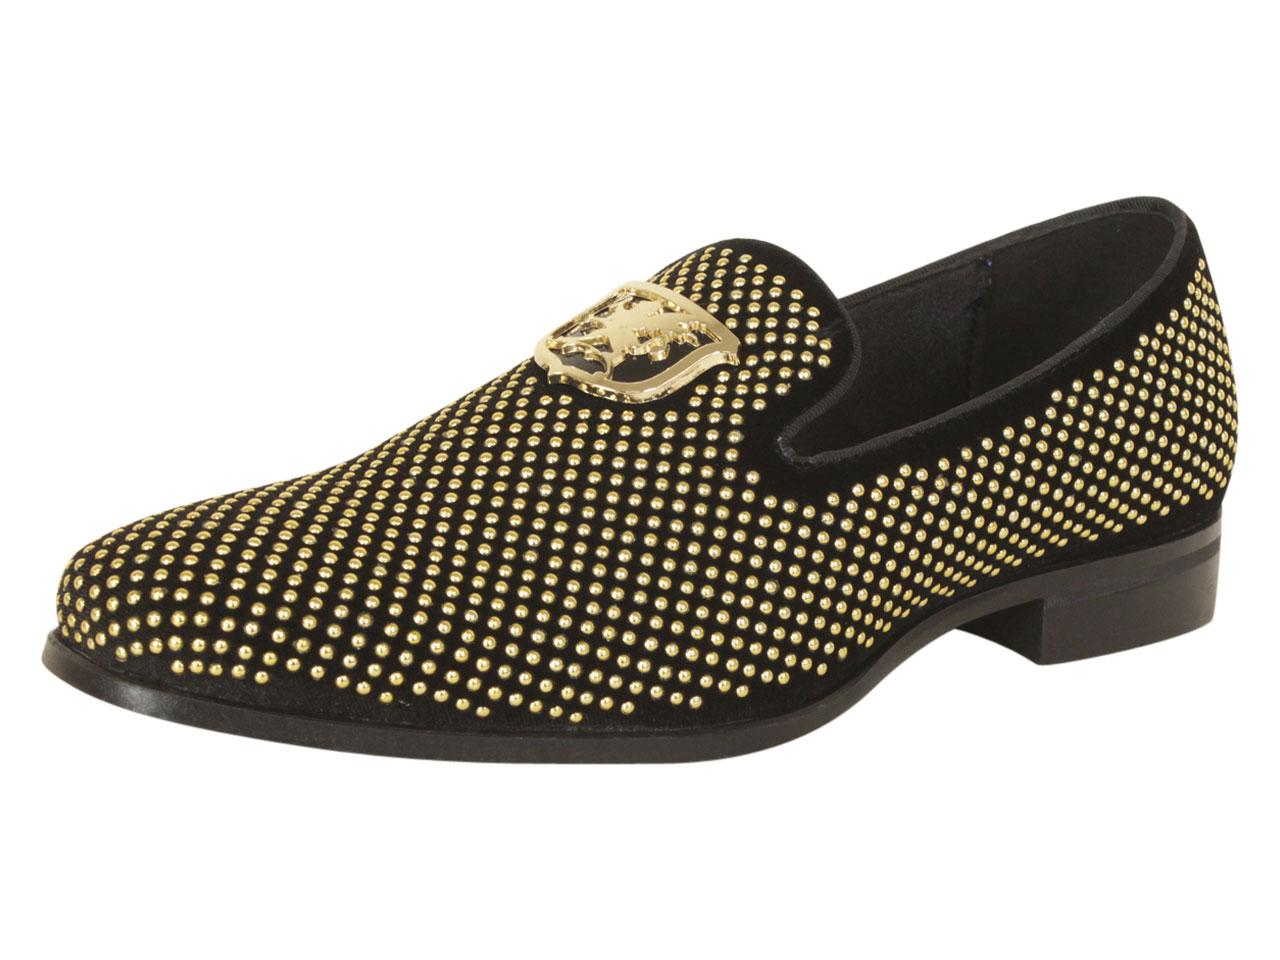 Image of - Black/Gold - 13 D(M) US